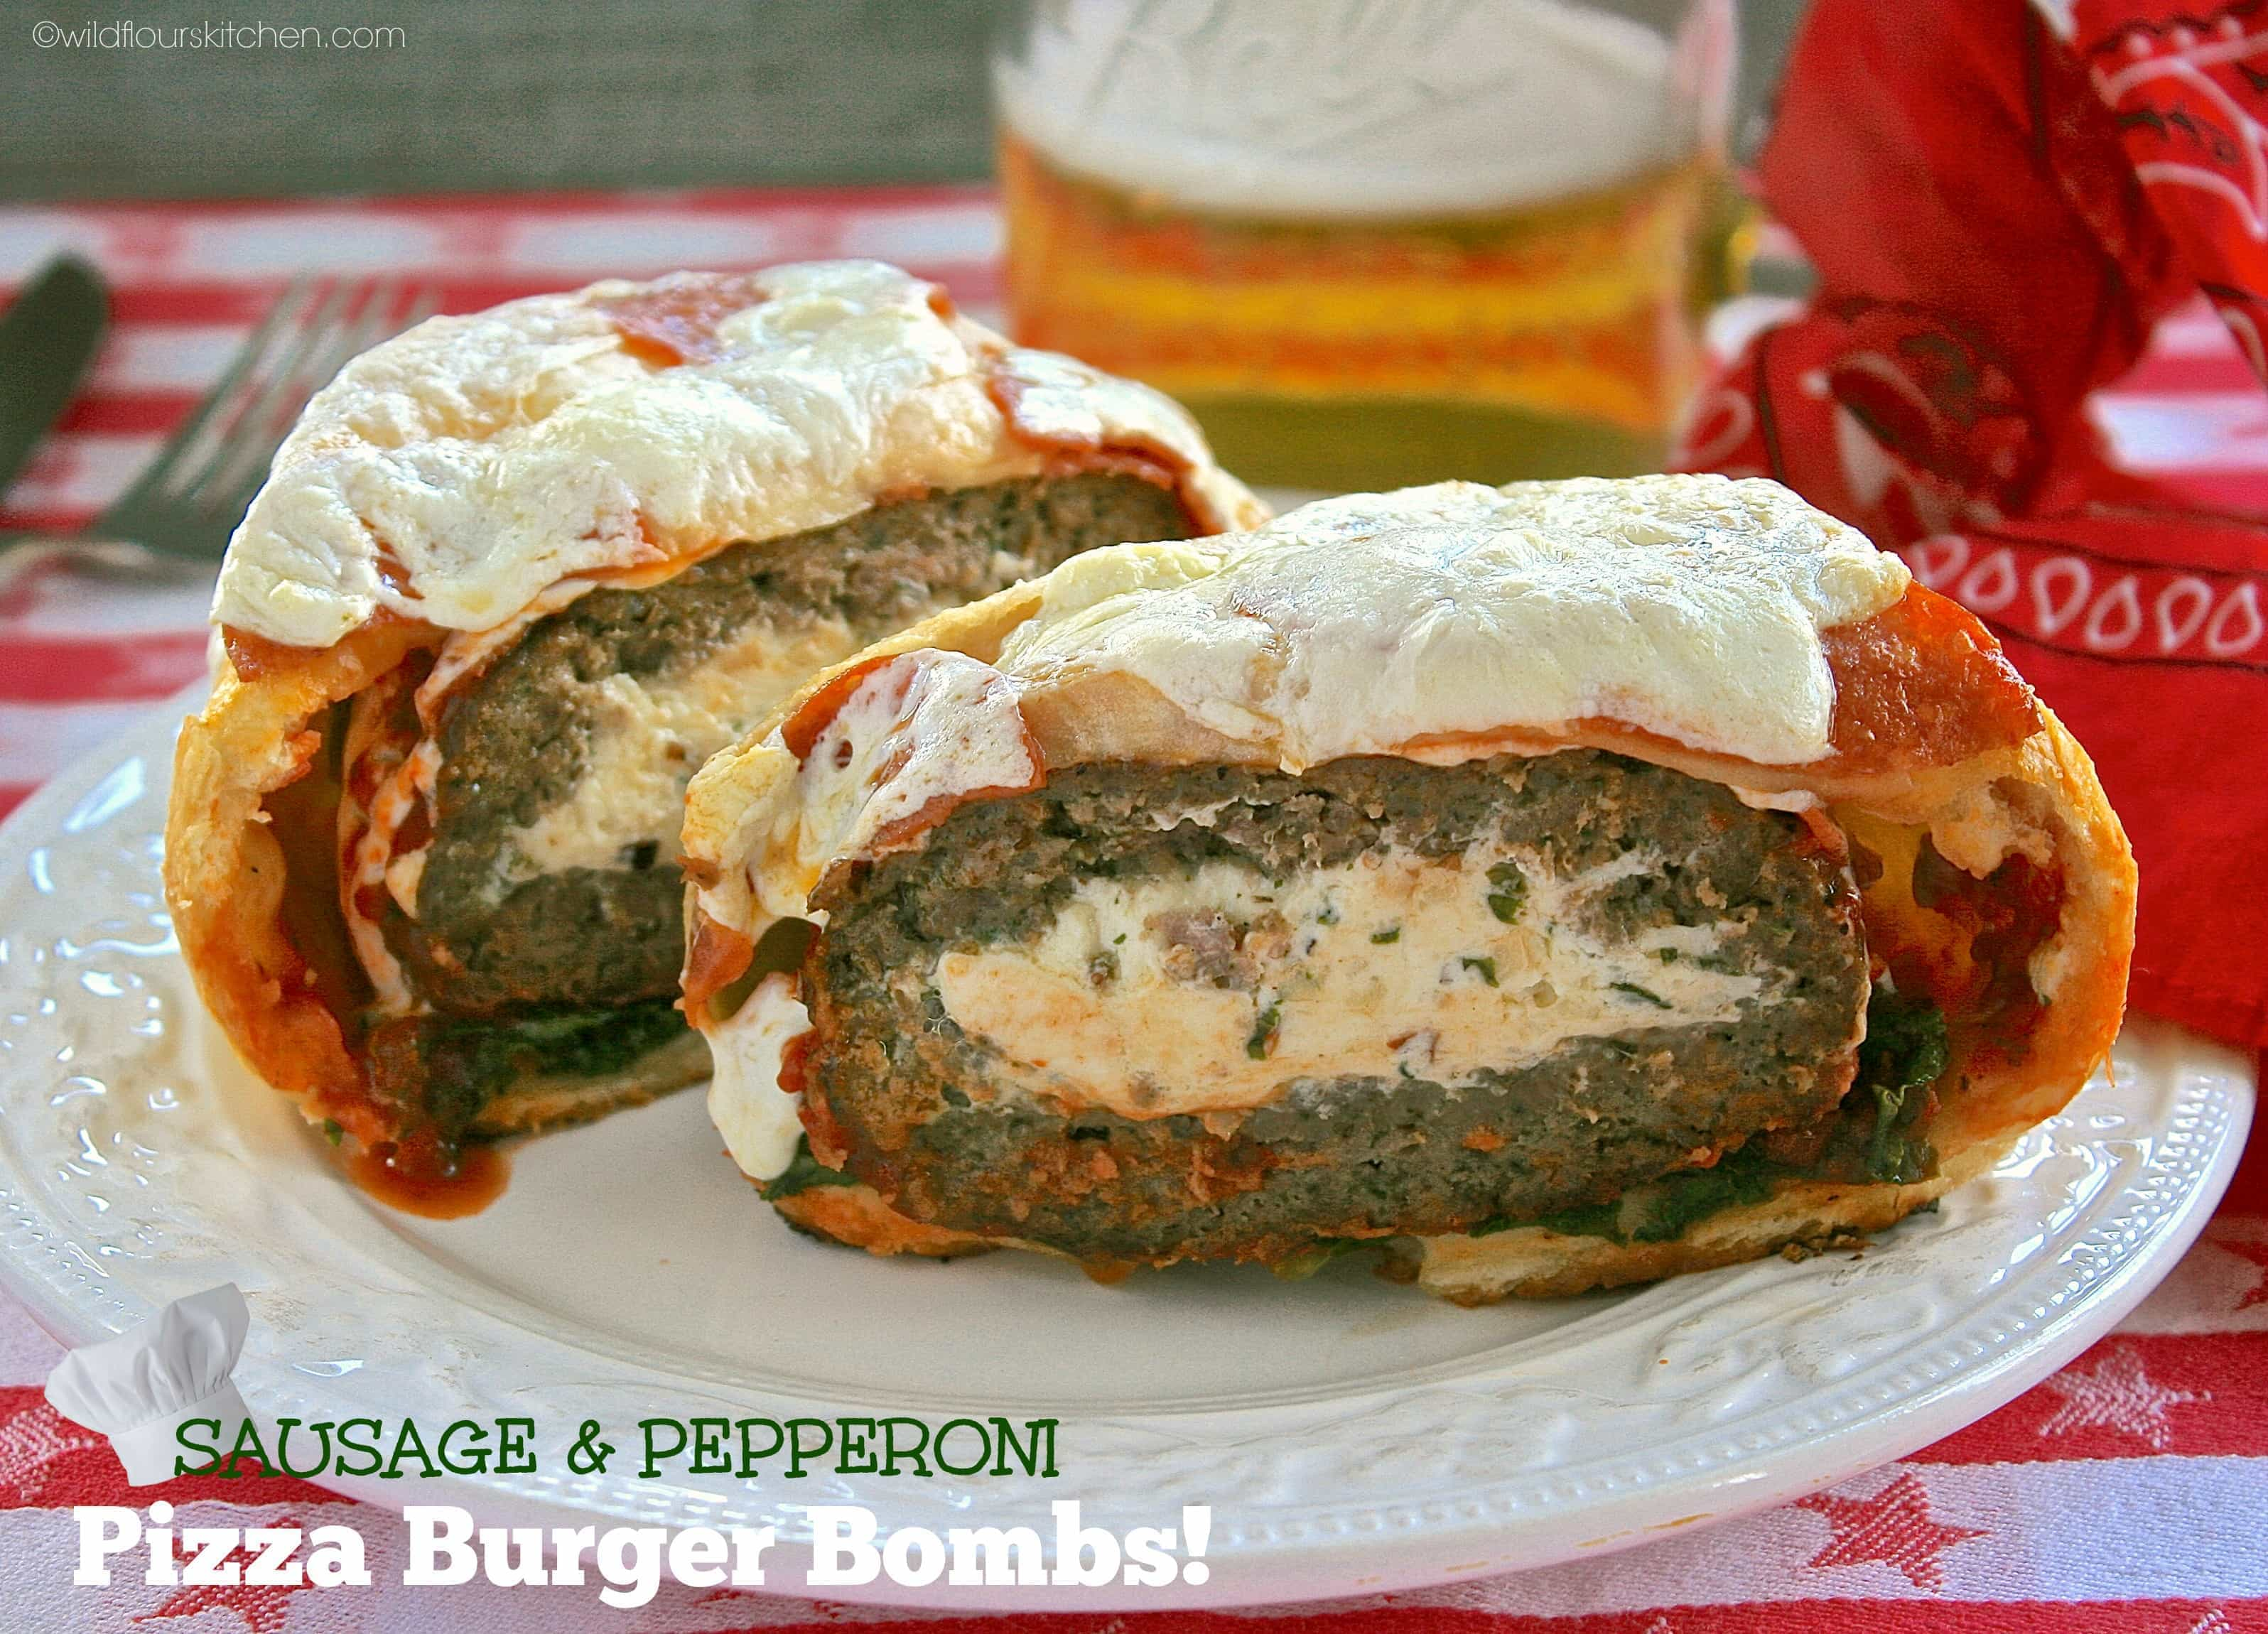 Sausage & Pepperoni Pizza Burger Bombs! - Wildflour's Cottage Kitchen